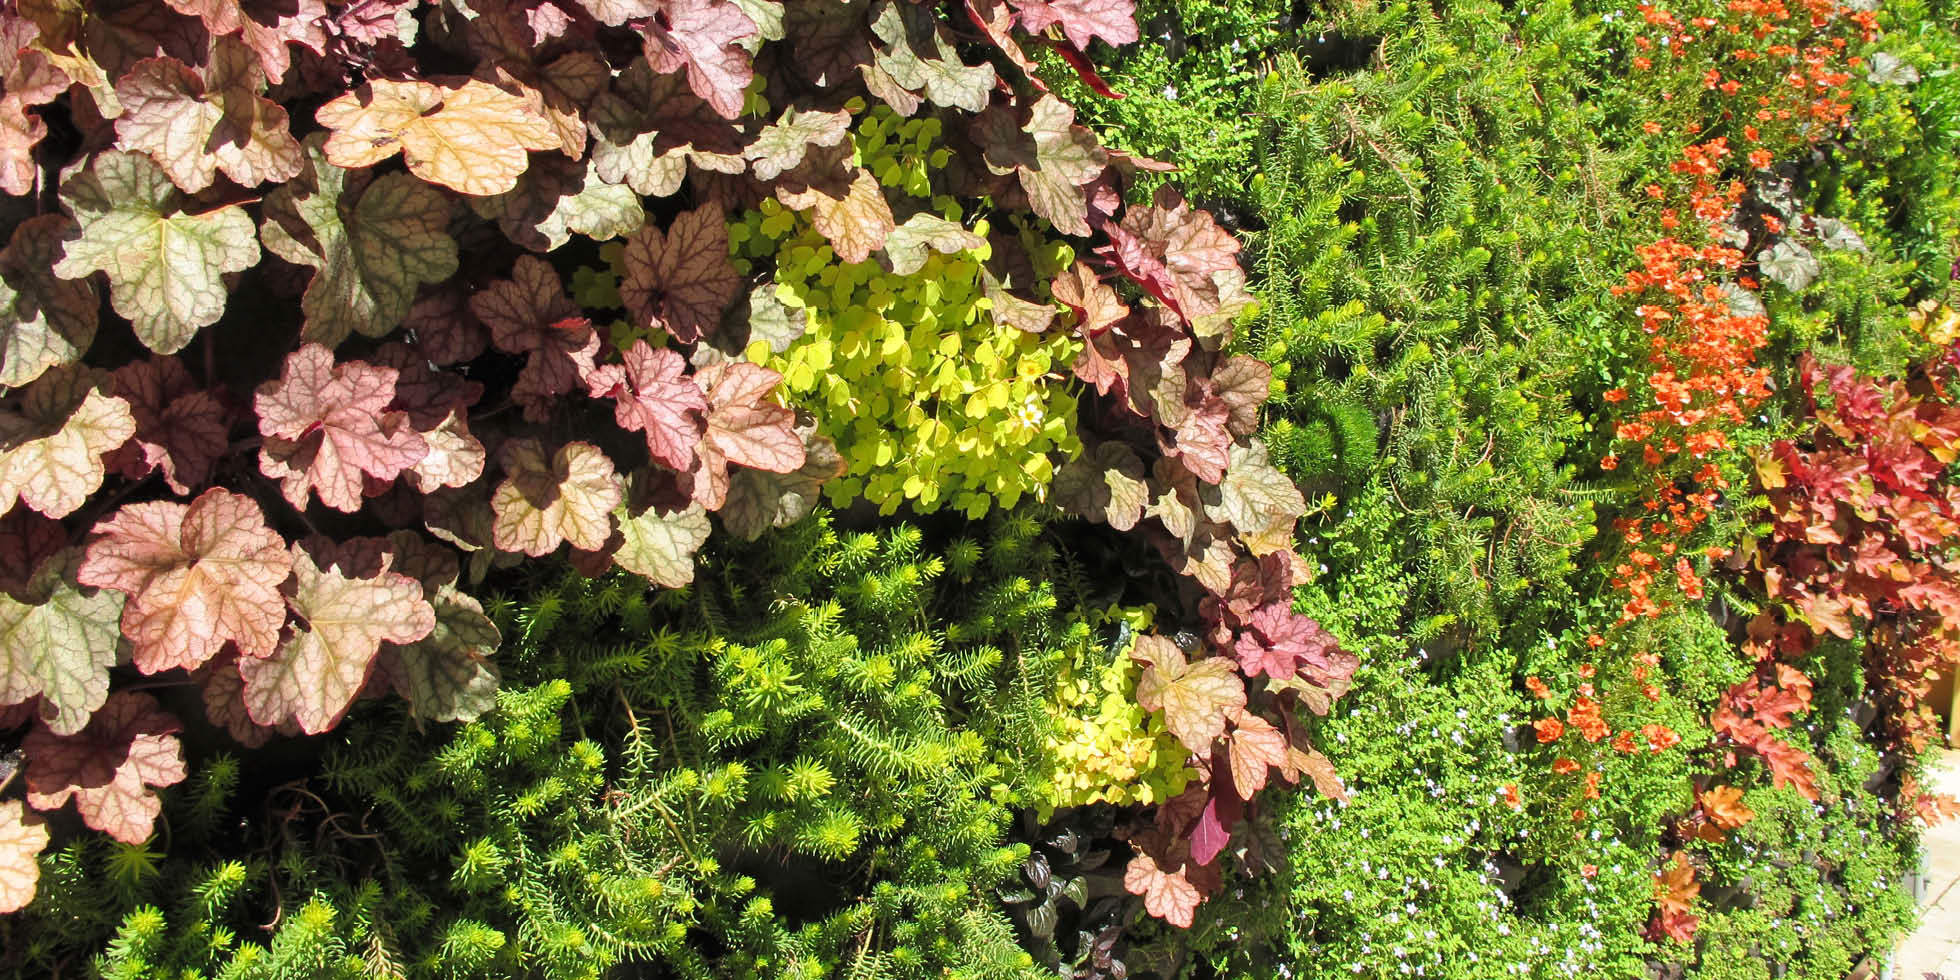 Tiburon Estate Living Wall by Habitat Horticulture - View 2